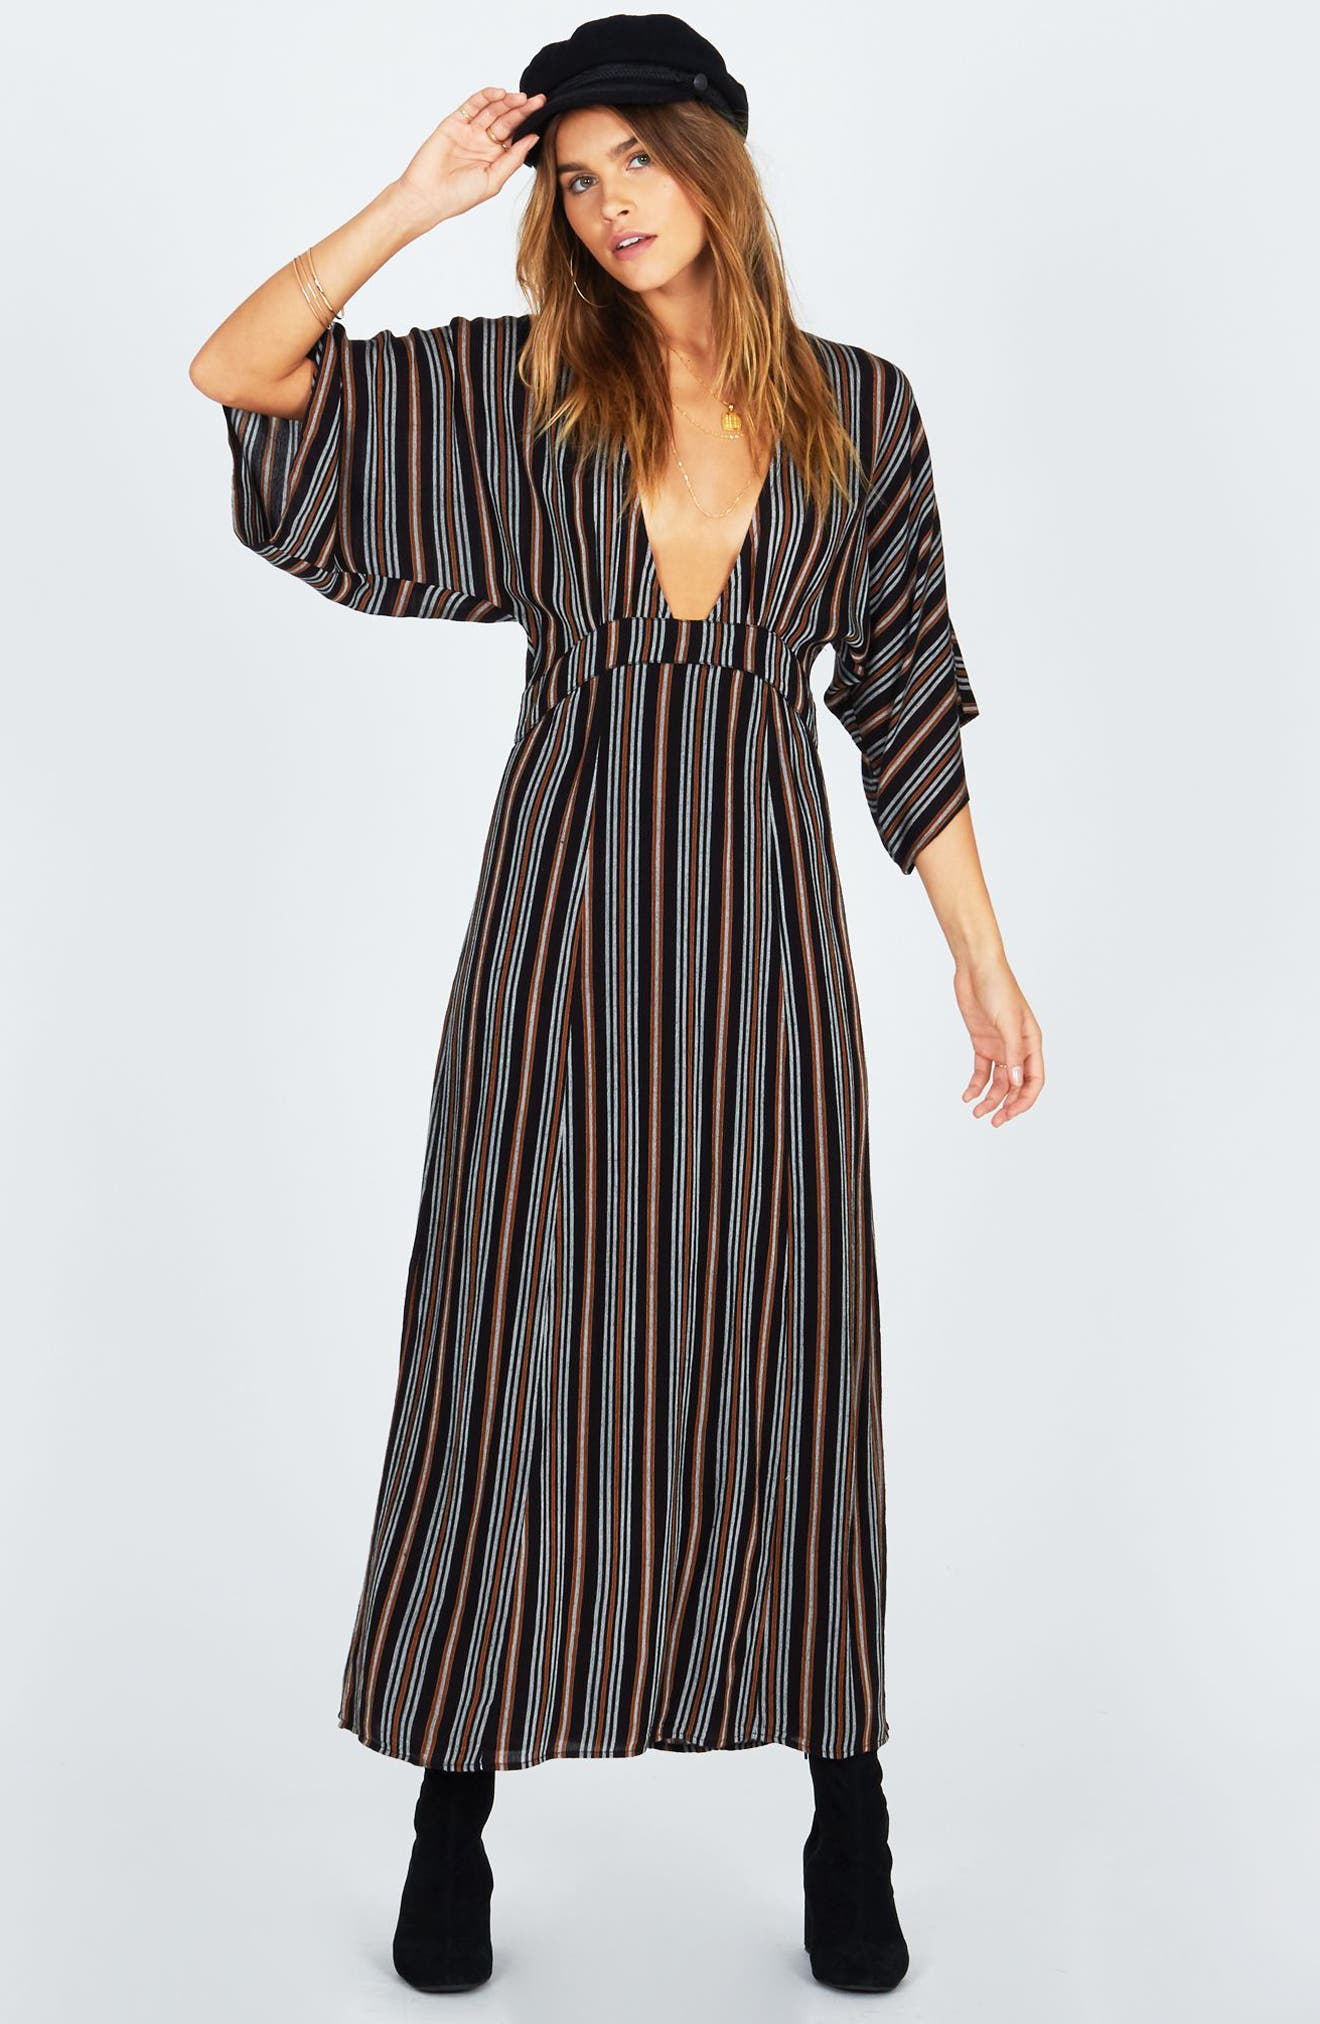 Forever & Day Stripe Maxi Dress,                             Alternate thumbnail 2, color,                             Black